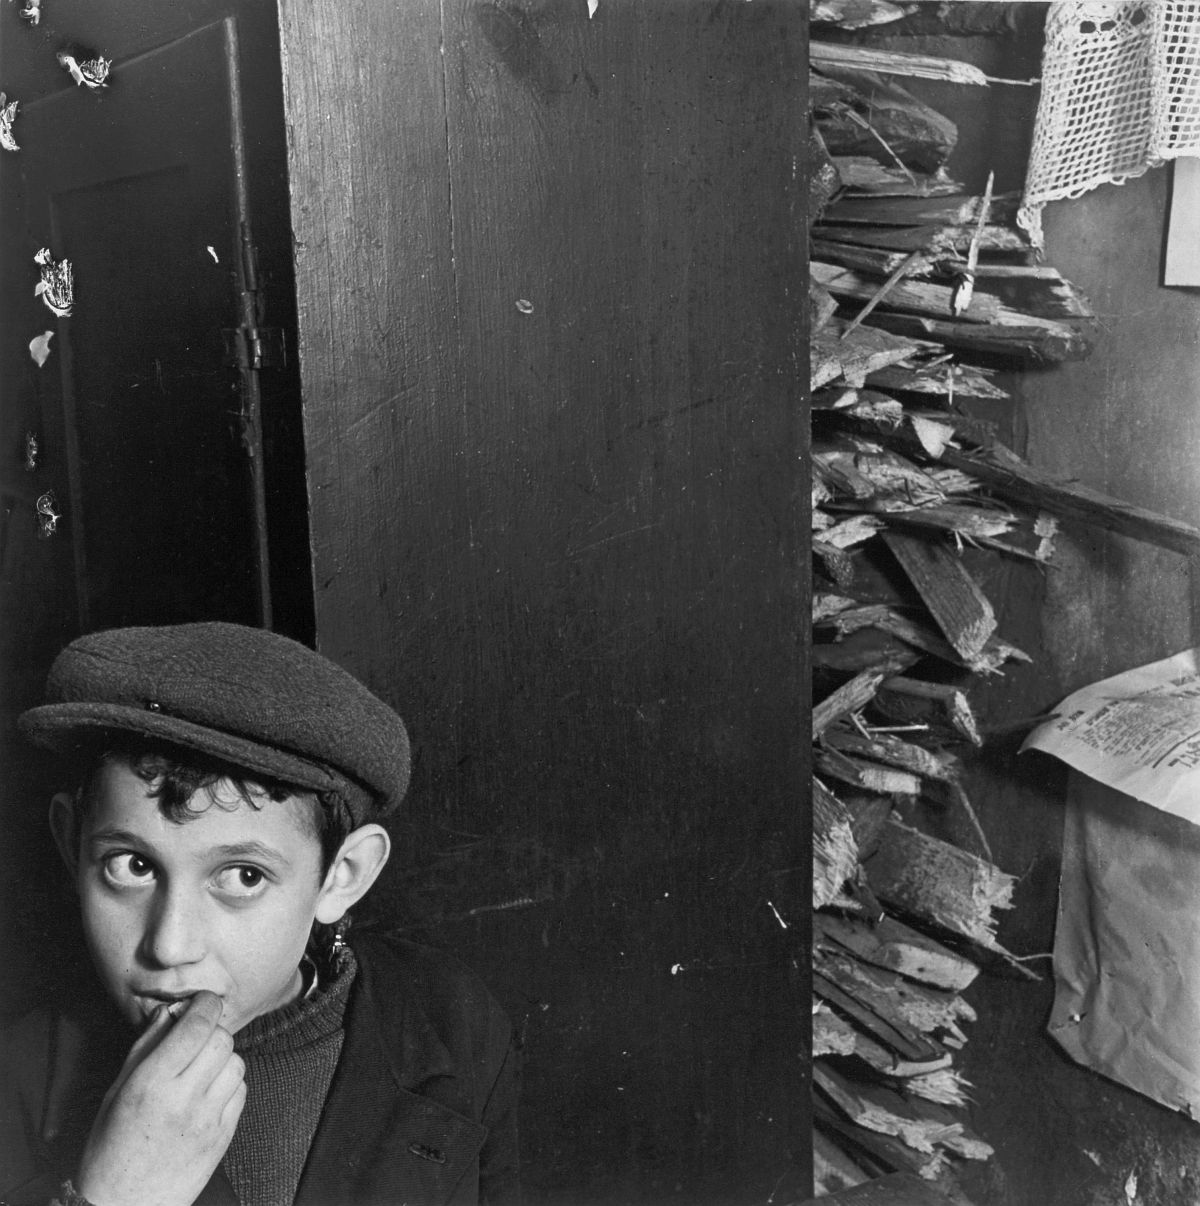 Roman Vishniac, [Boy with kindling in a basement dwelling, Krochmalna Street, Warsaw], ca. 1935–38. Gelatin silver print. © Mara Vishniac Kohn, courtesy International Center of Photography.